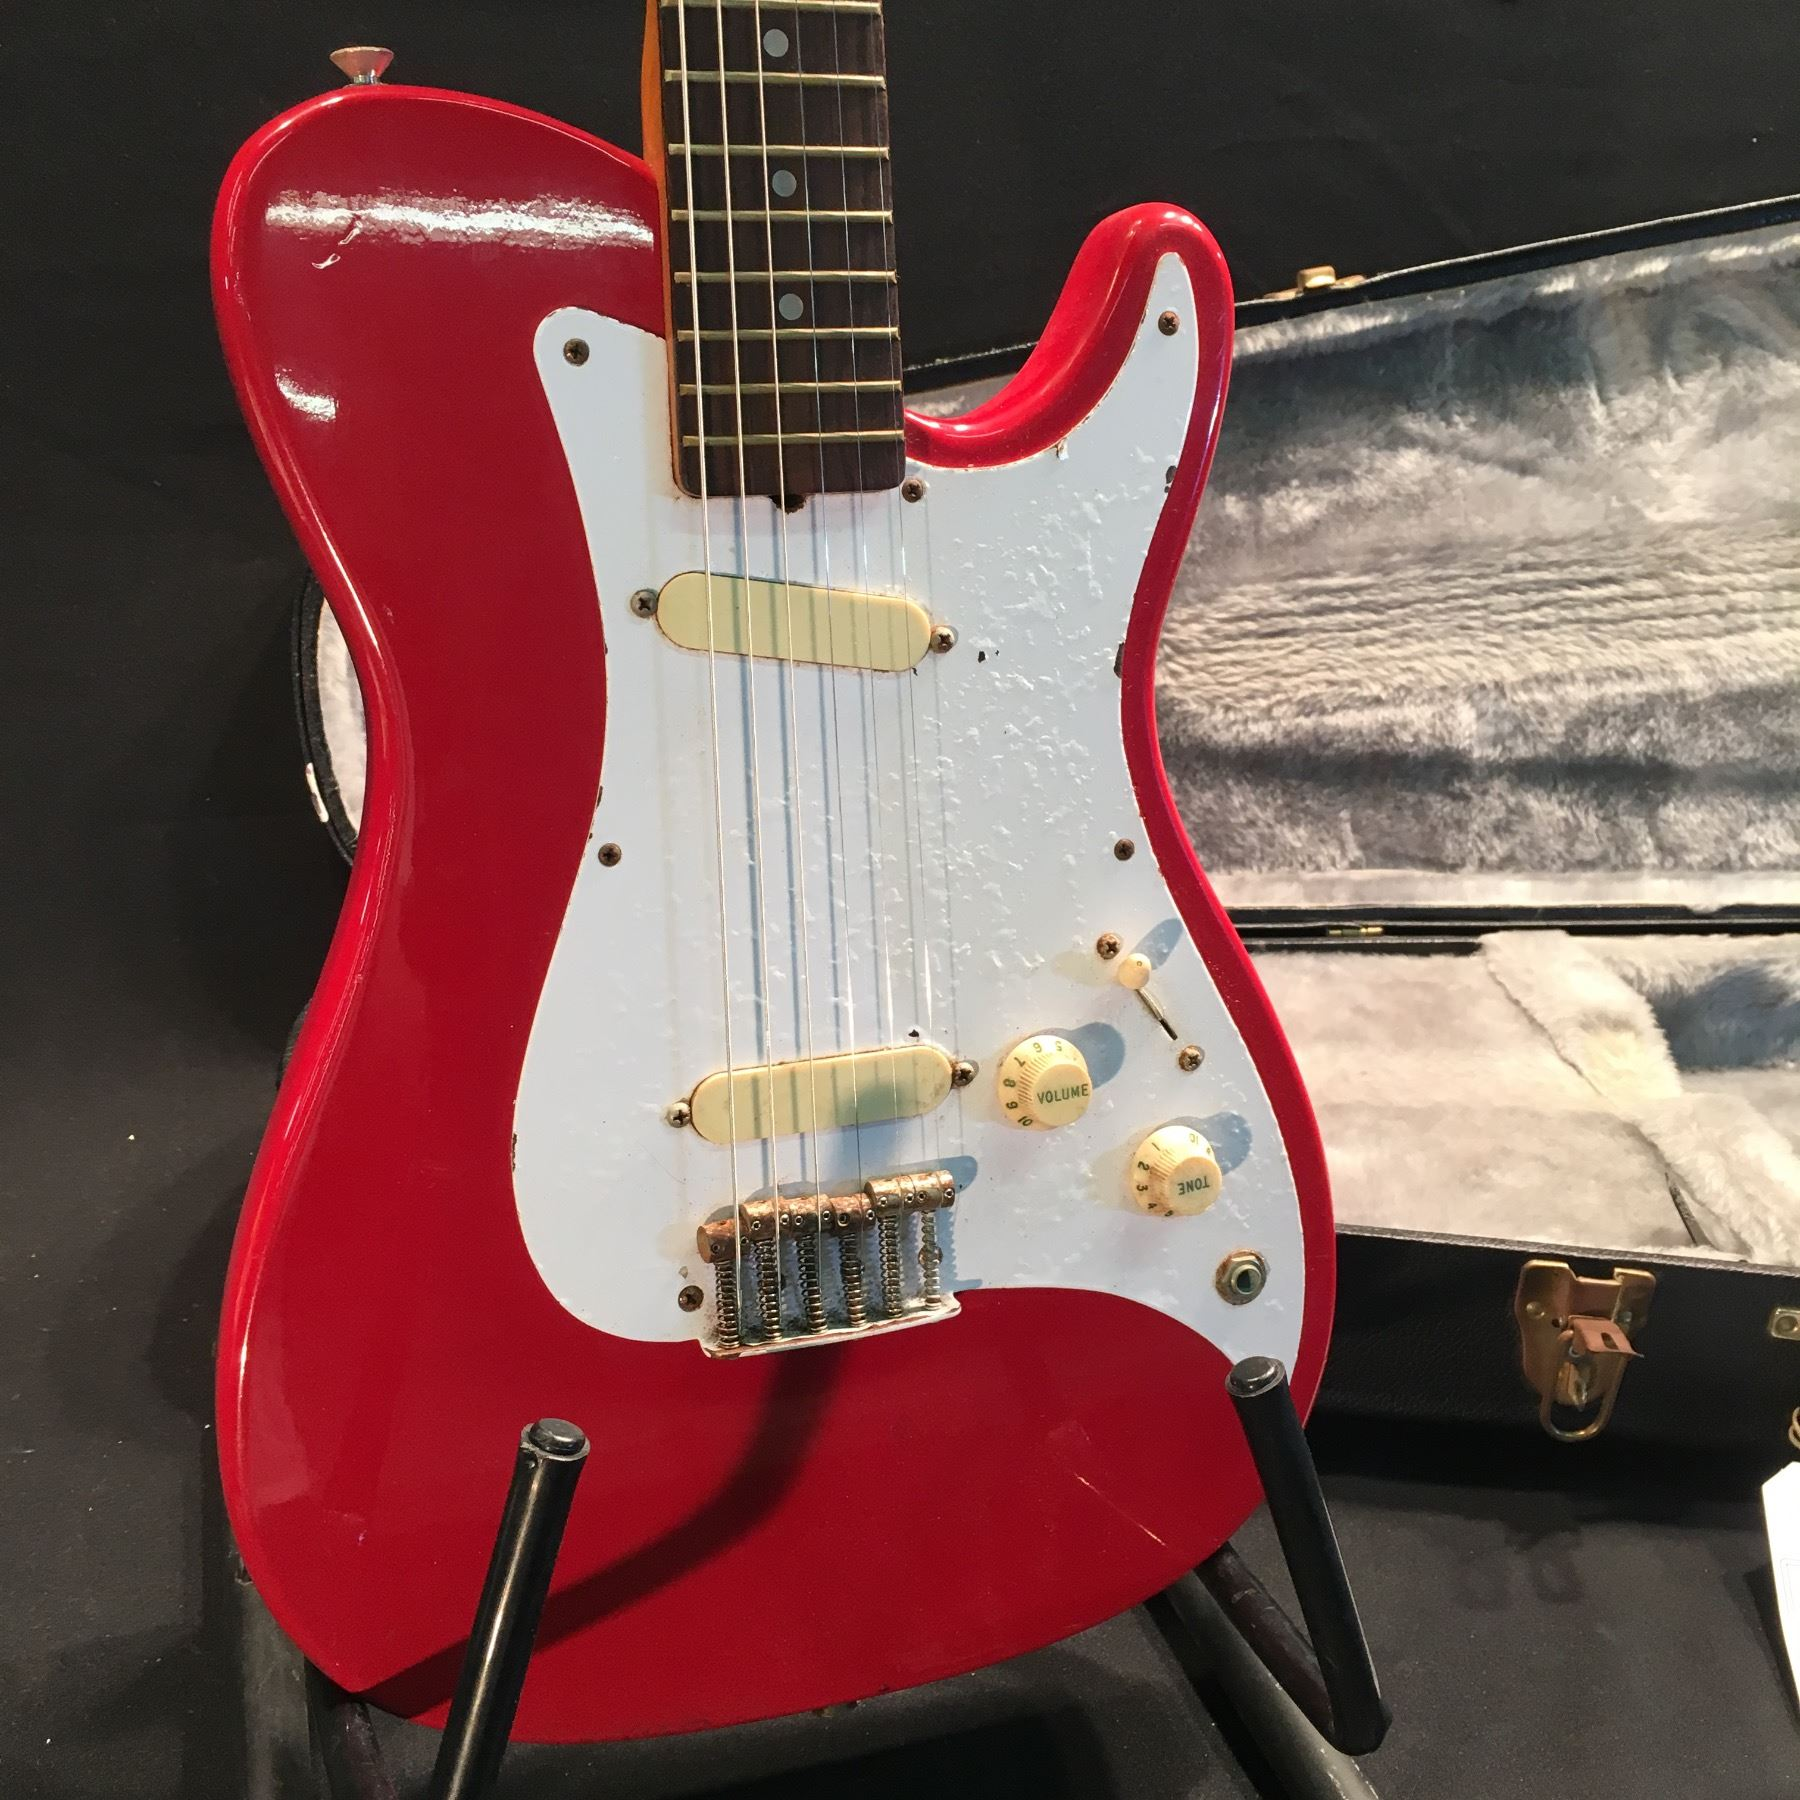 fender bullet guitar serial number e108173 made in usa 1981 82 with two single coil pickups. Black Bedroom Furniture Sets. Home Design Ideas